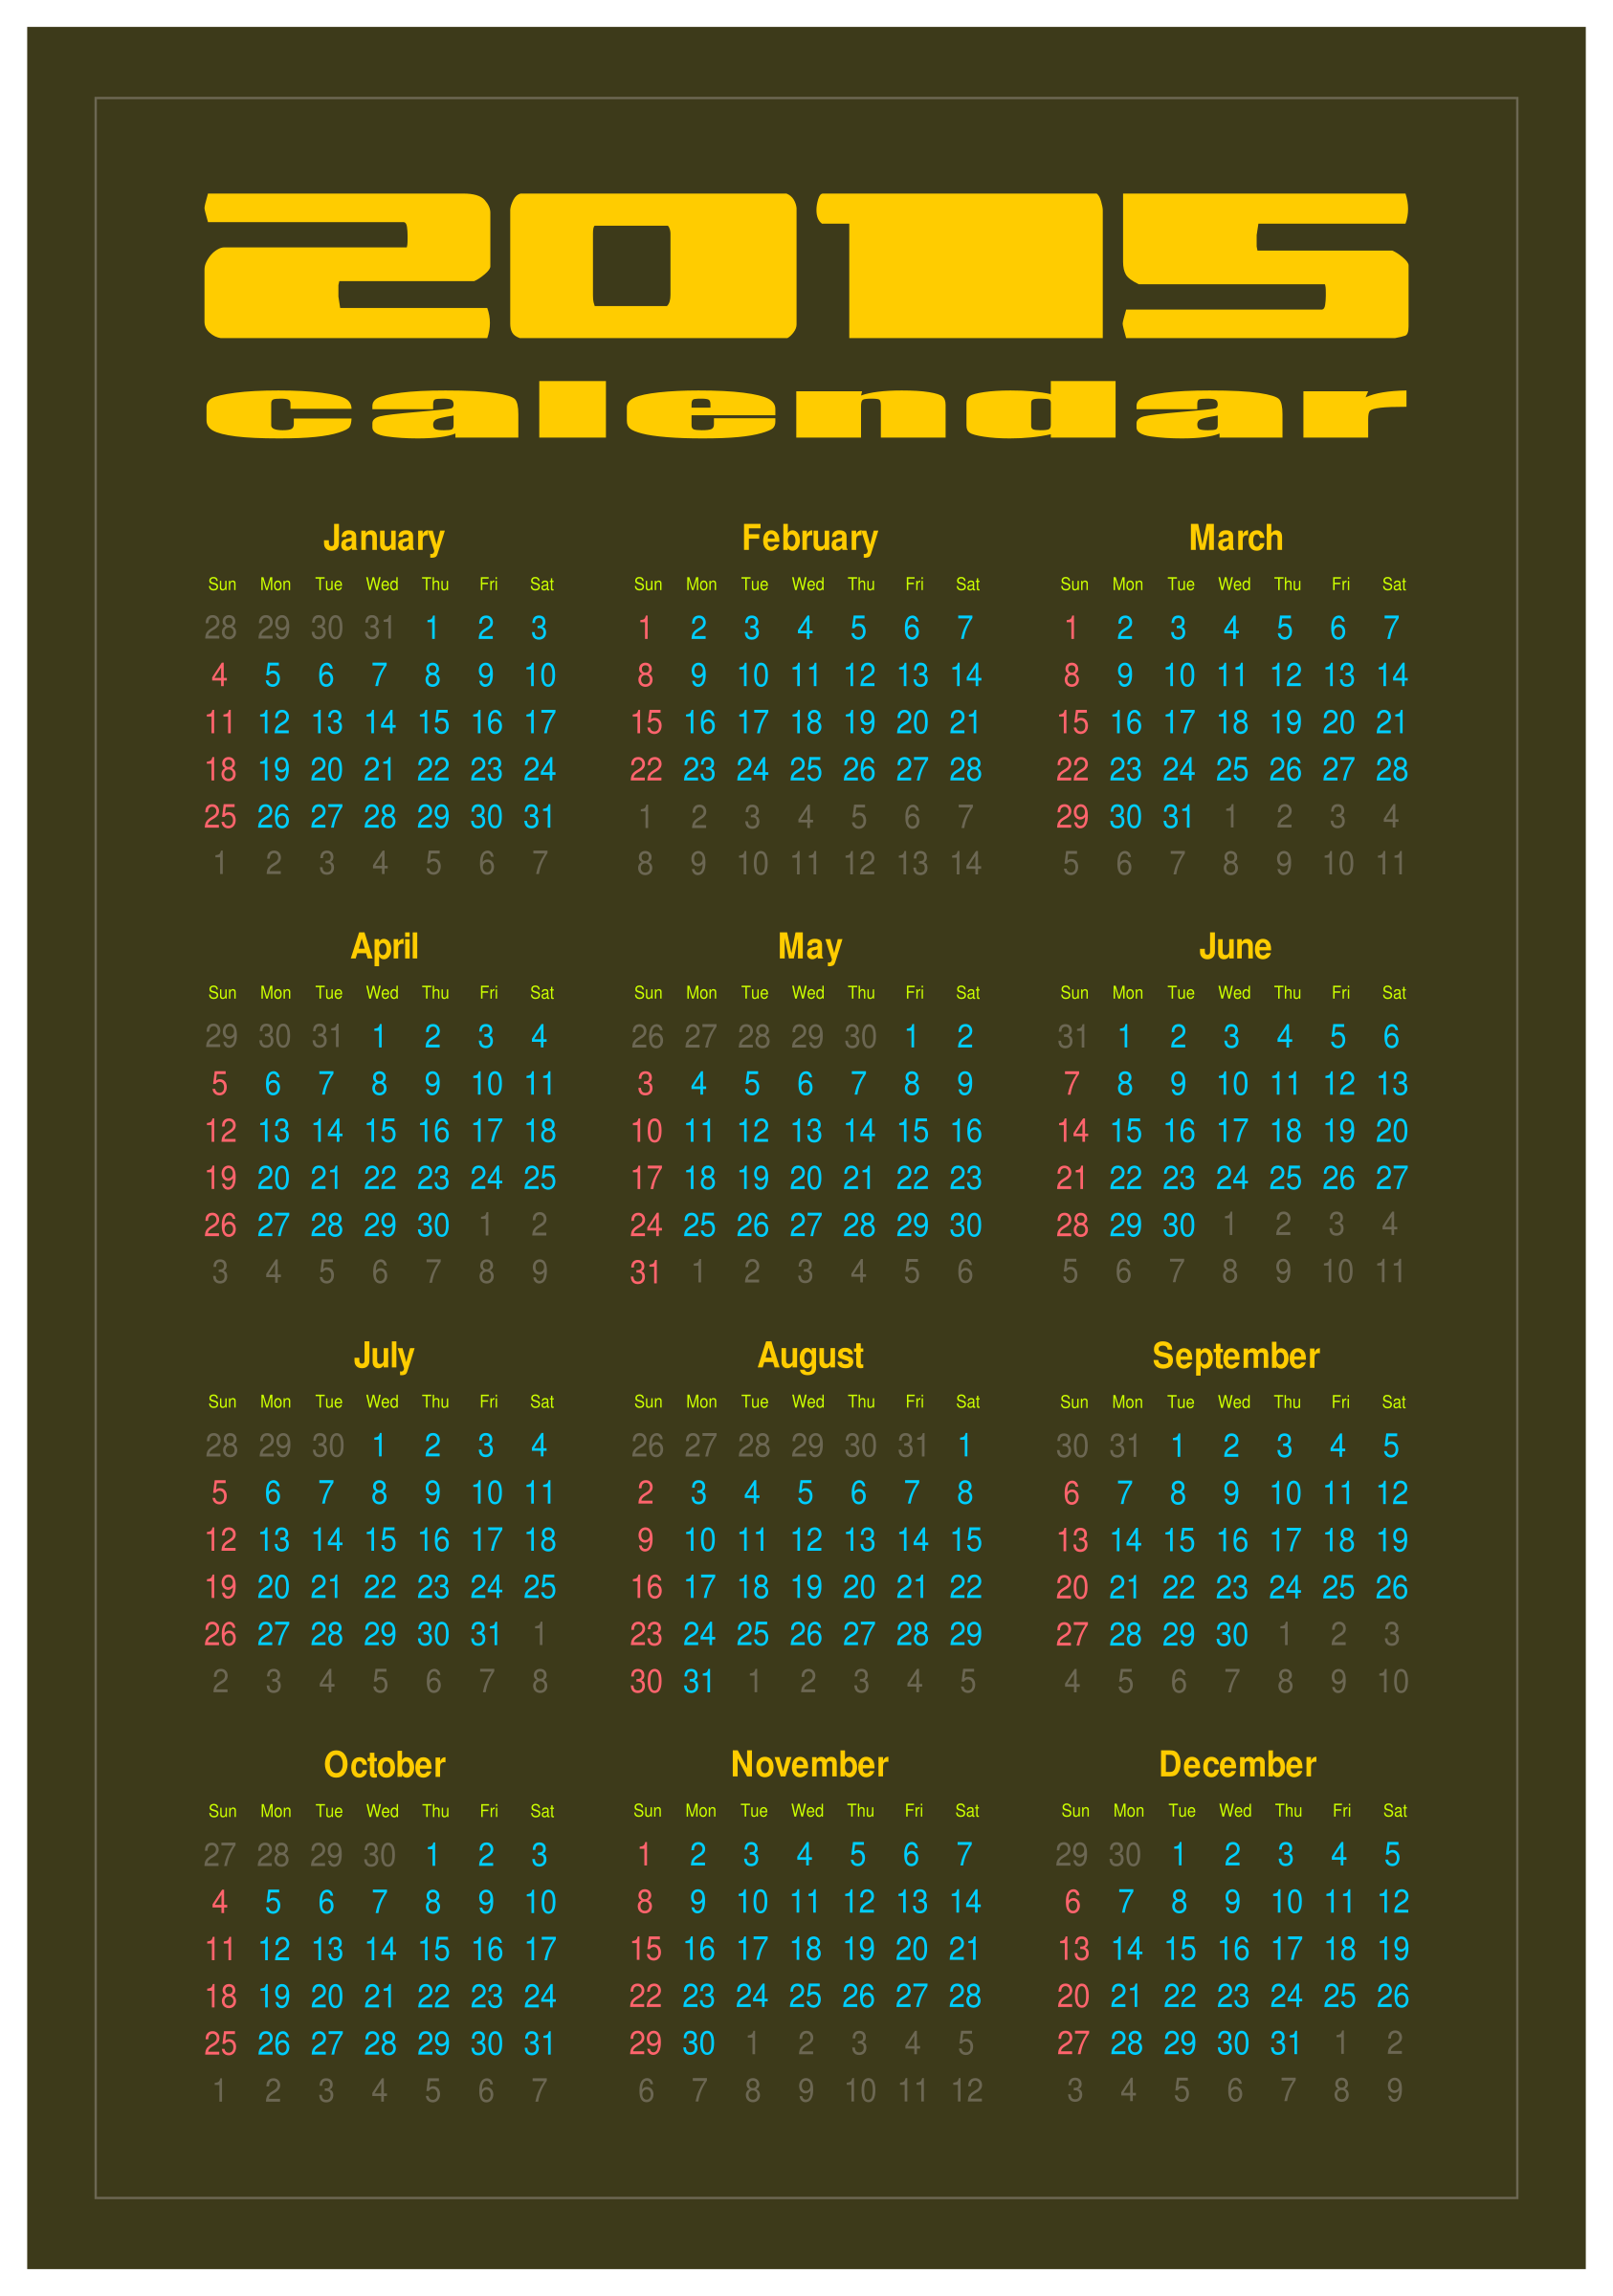 Calendar 2015 by Viscious-Speed